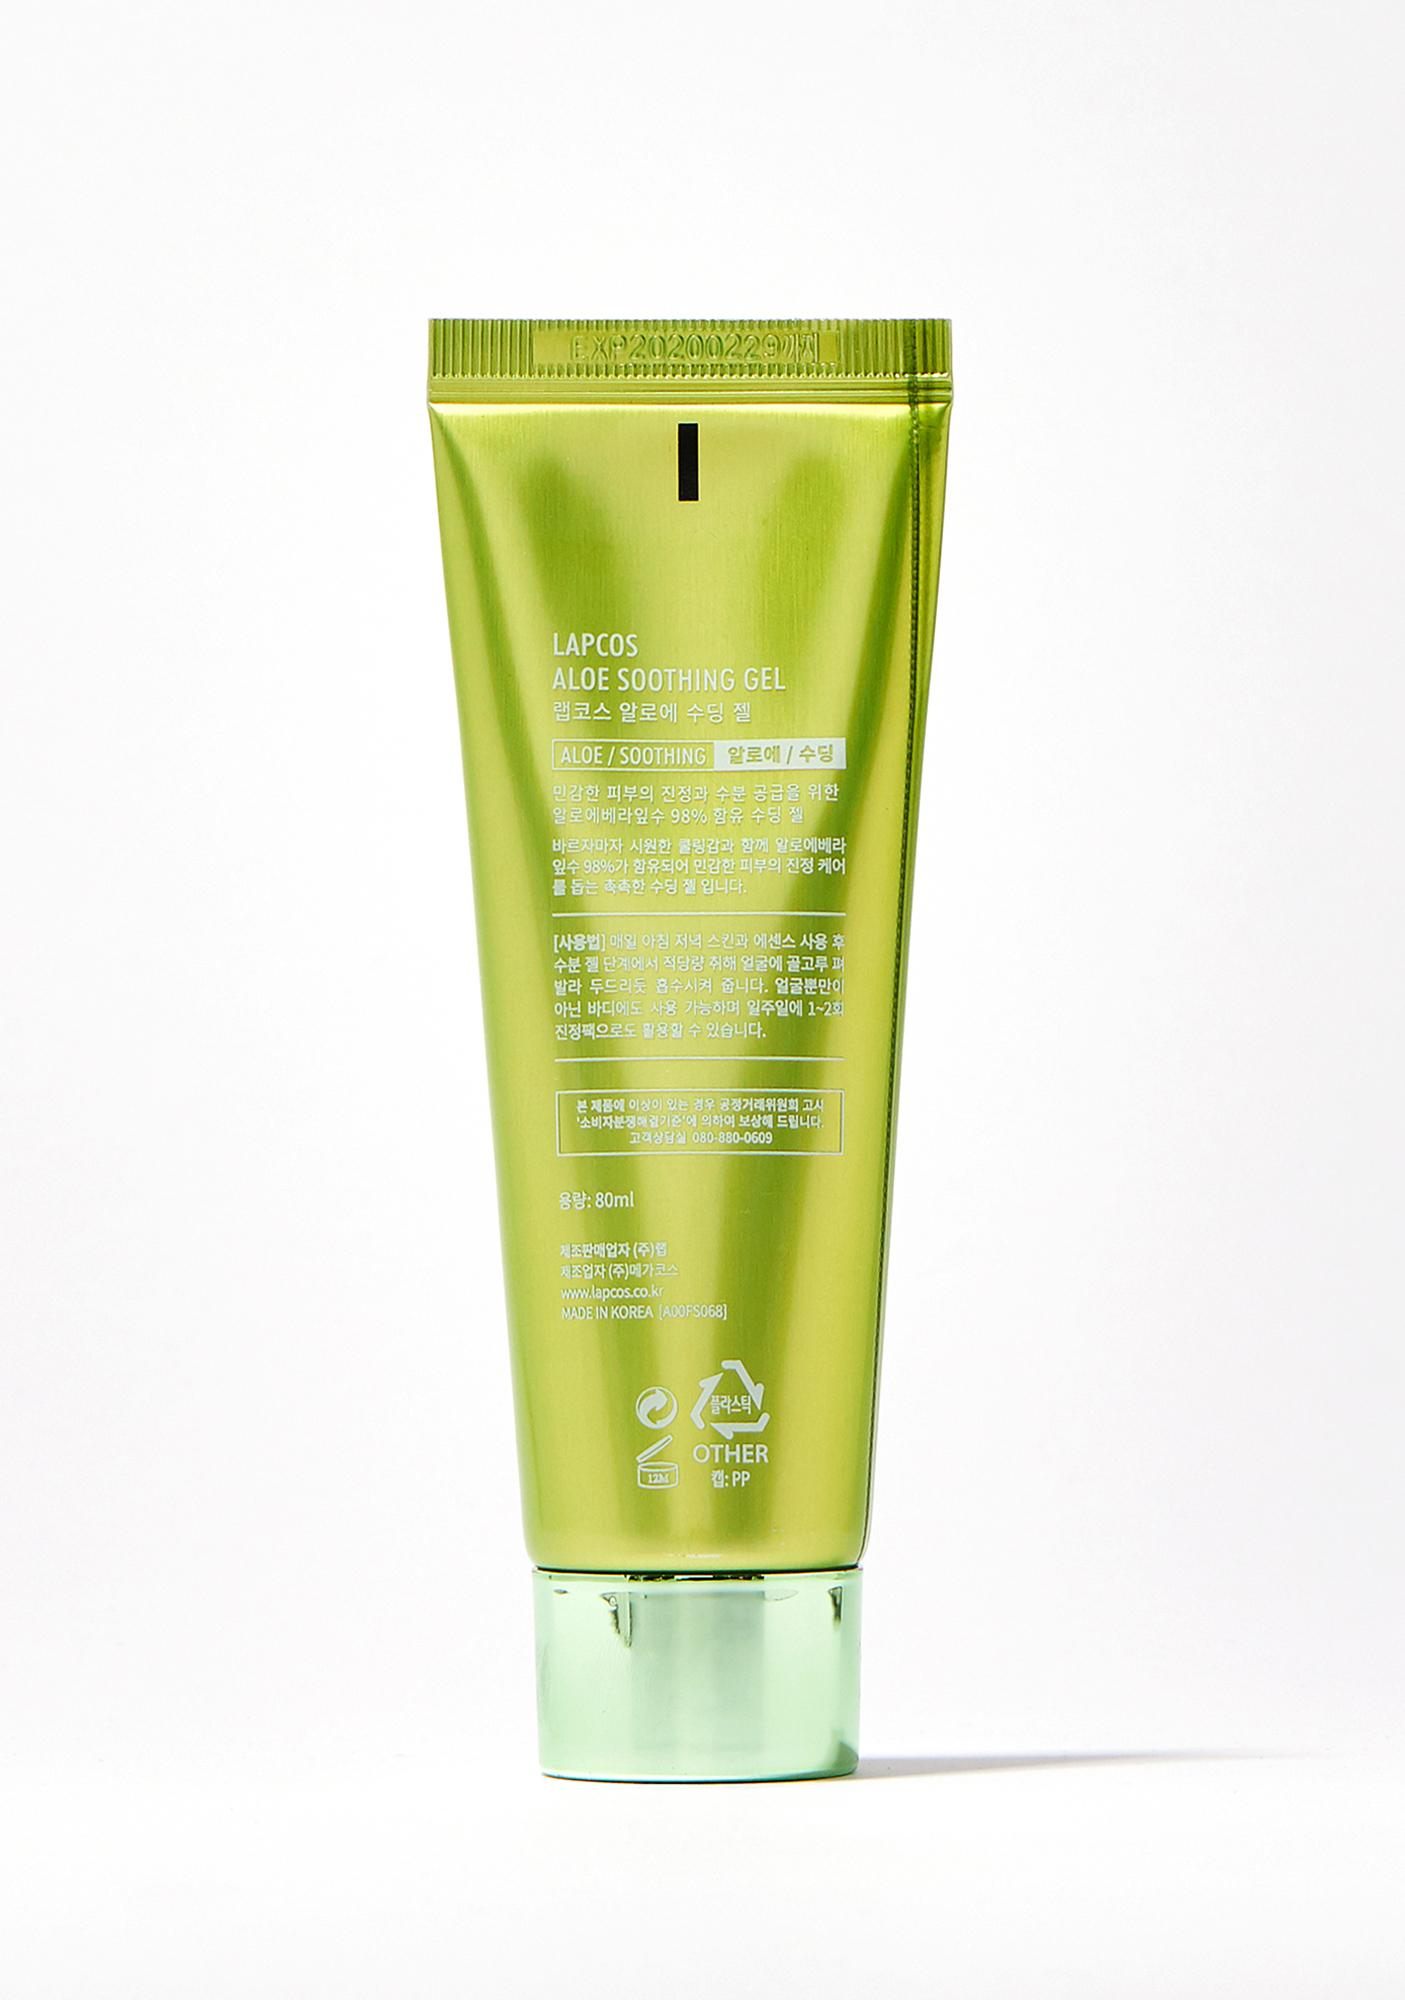 LAPCOS Aloe Soothing Gel